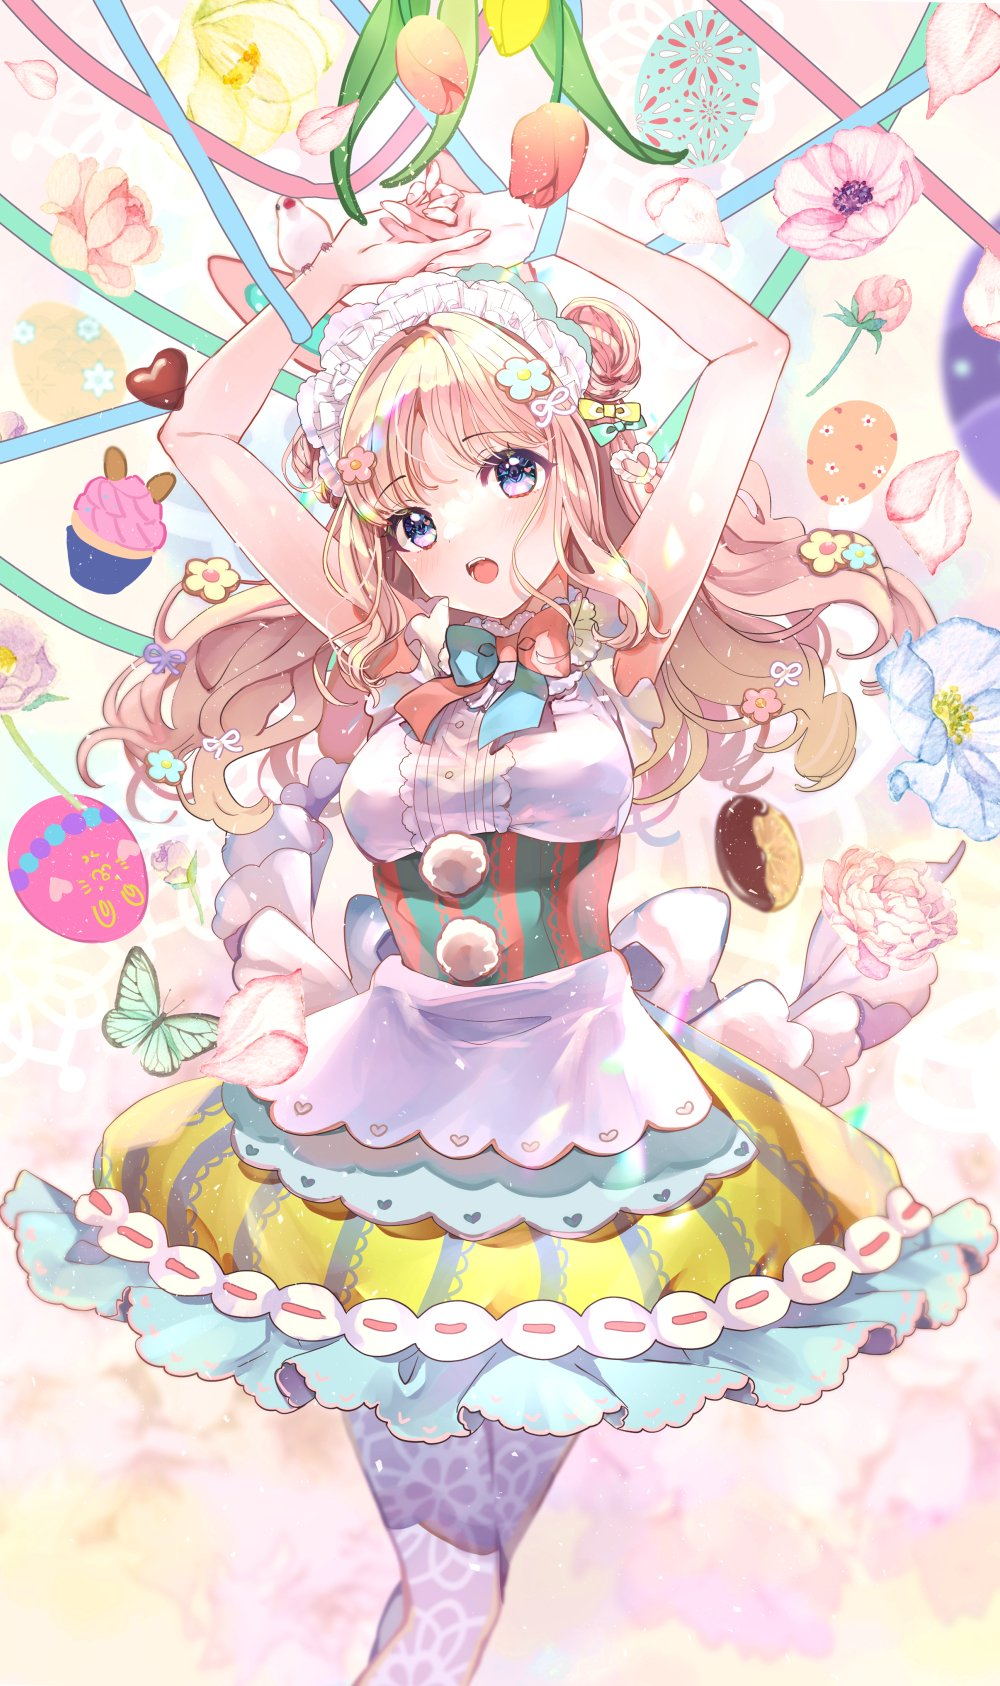 1girl animal animal_ears apron arms_up blue_flower blue_ribbon blush breasts brown_hair bug butterfly candy chocolate chocolate_heart clothing_cutout commentary_request cupcake double_bun easter easter_egg egg floating_hair flower food green_ribbon hands_together heart heart_cutout highres insect long_hair maid_headdress medium_breasts nail_polish open_mouth original own_hands_together pantyhose petals pink_flower pink_nails puracotte purple_legwear rabbit_ears red_flower ribbon shirt skirt sleeveless sleeveless_shirt solo striped tulip vertical-striped_skirt vertical_stripes waist_apron white_apron white_shirt yellow_skirt